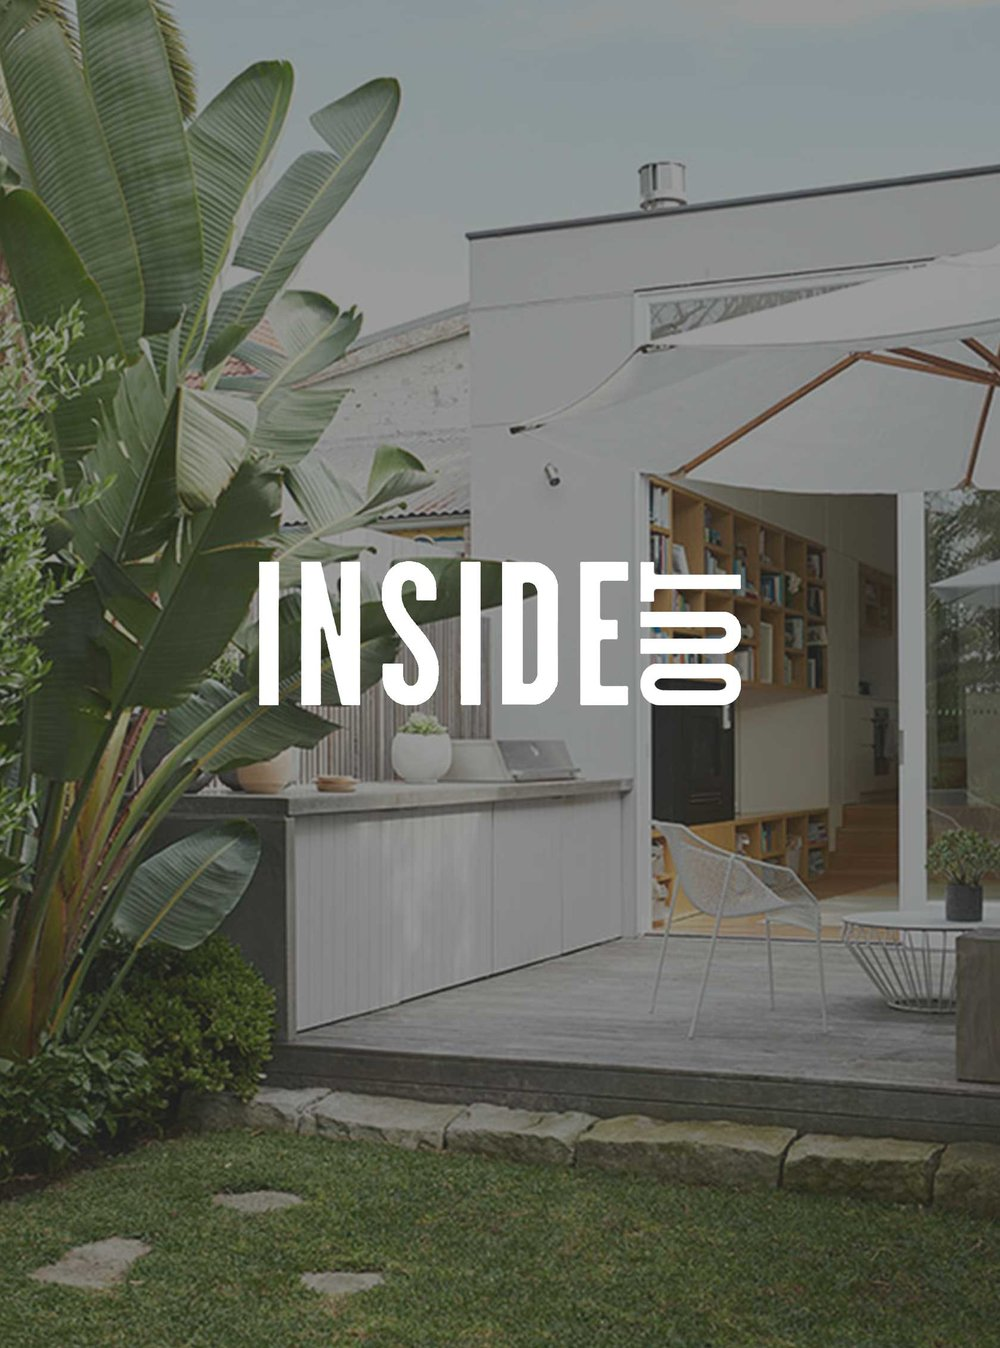 Inside Out - 'Decked Out: A Multipurpose Garden Transformed This Small Space'Oct 18, 2018